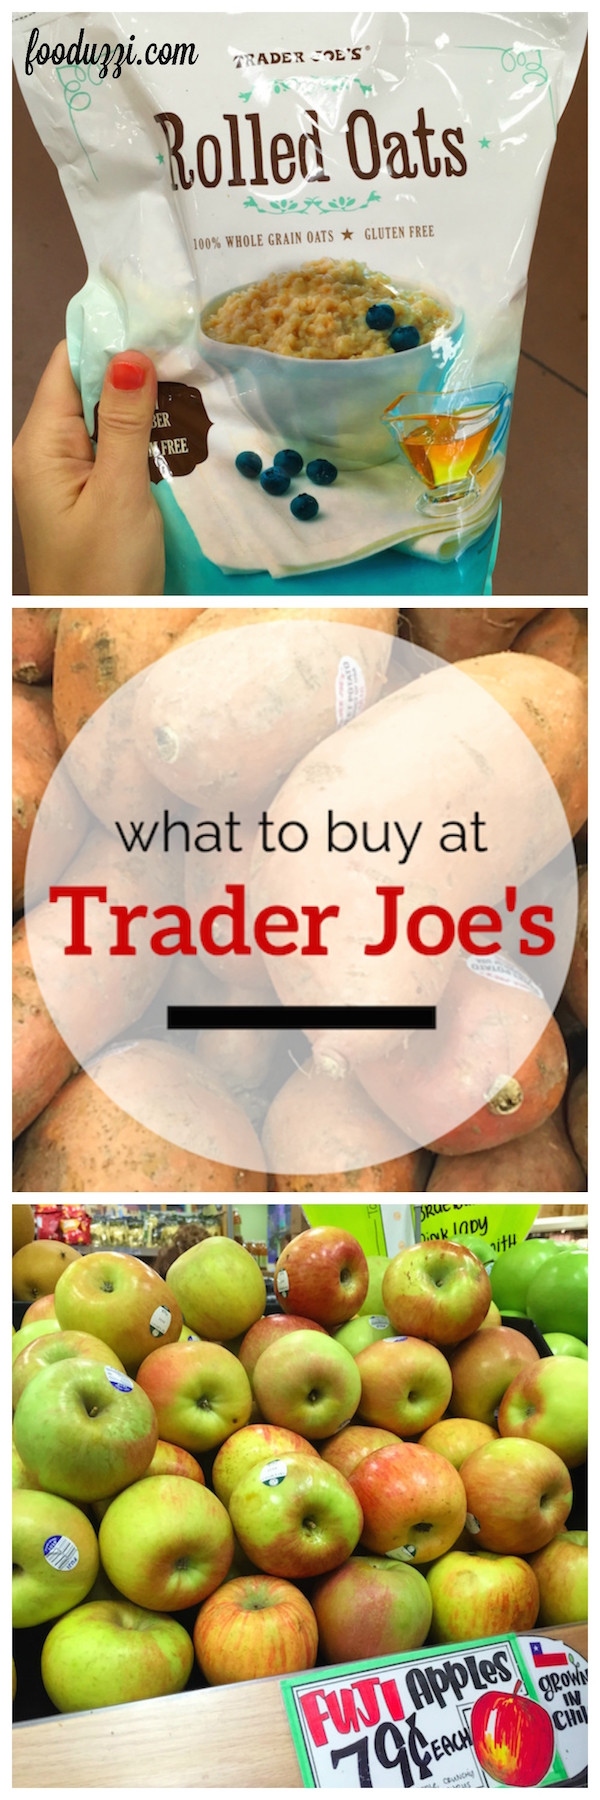 Gluten Free Appetizers Trader Joe'S  What to Buy at Trader Joe s Fooduzzi